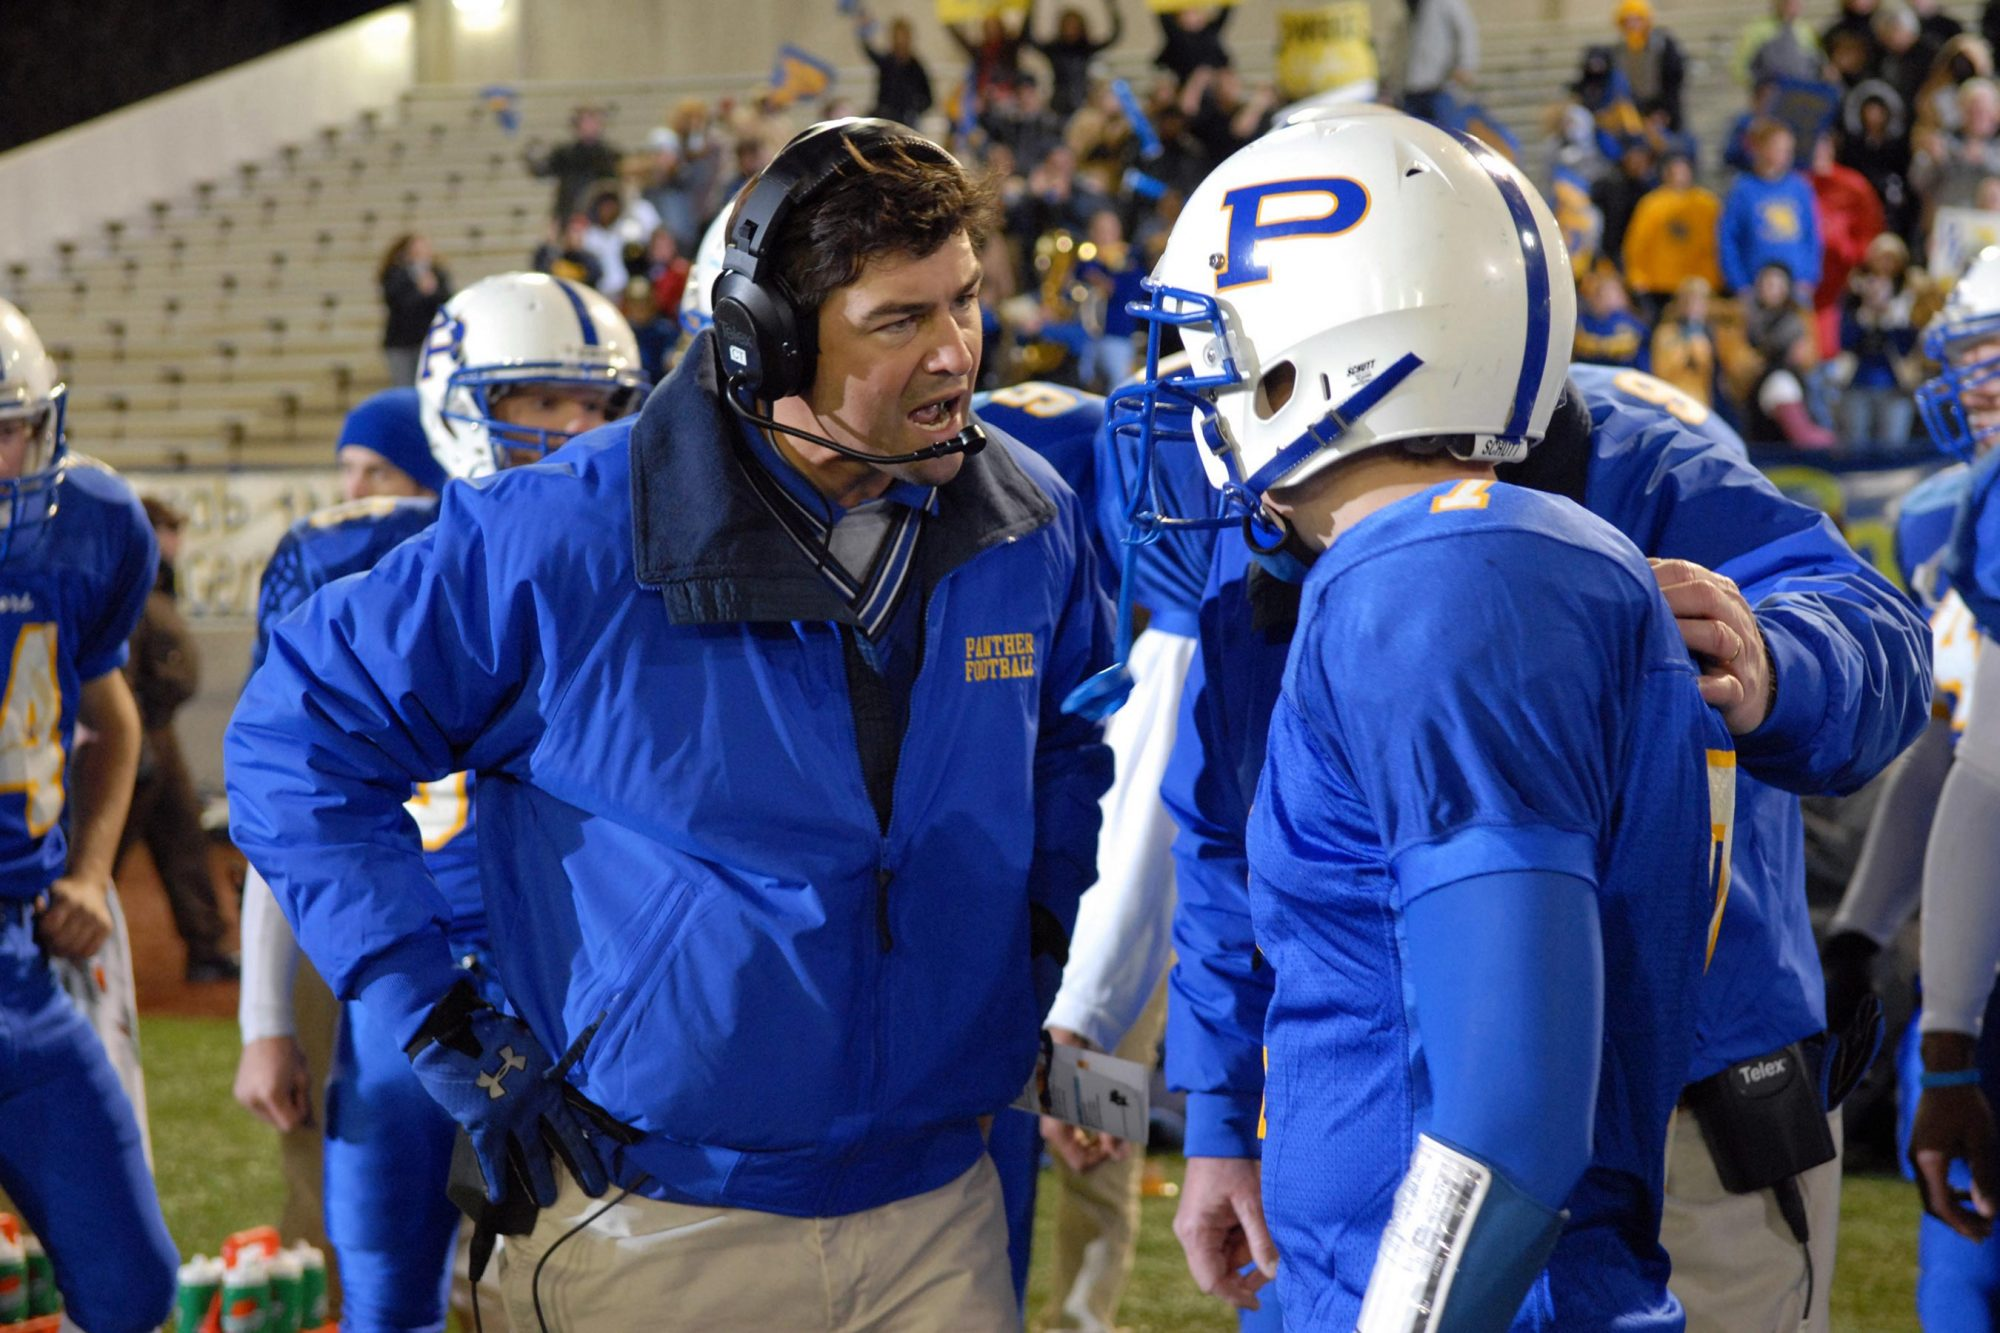 FRIDAY NIGHT LIGHTS, Kyle Chandler, Zach Gilford, 2006-2011,  ©NBC / Courtesy Everett Collections